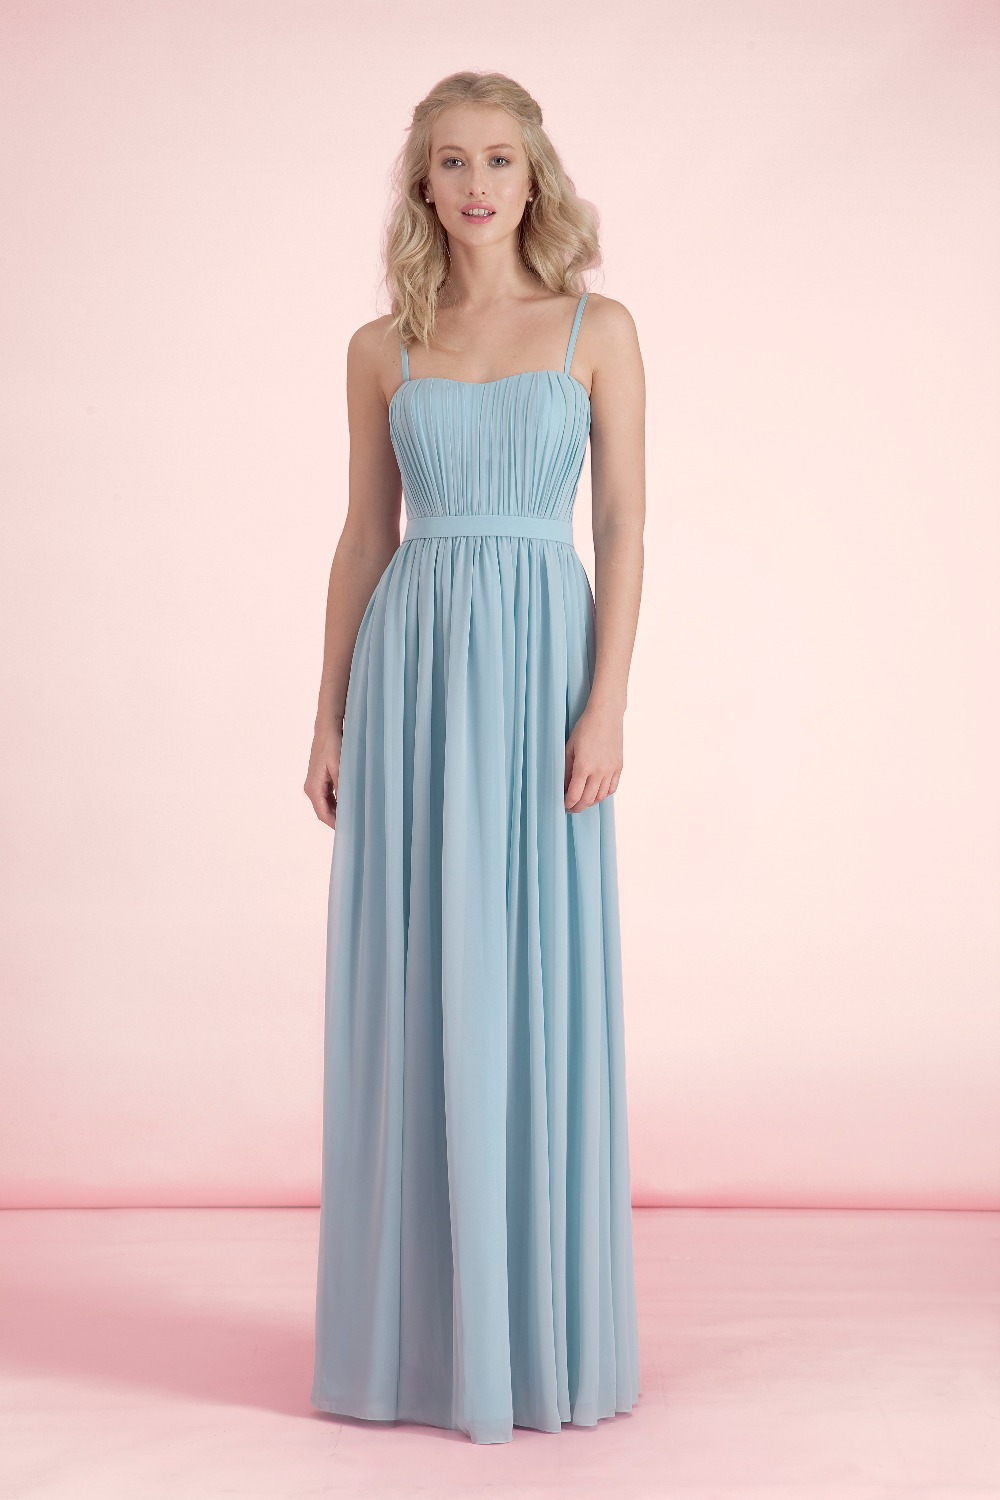 Summer Long A Line Pastel Blue Bridesmaid Dresses Wedding